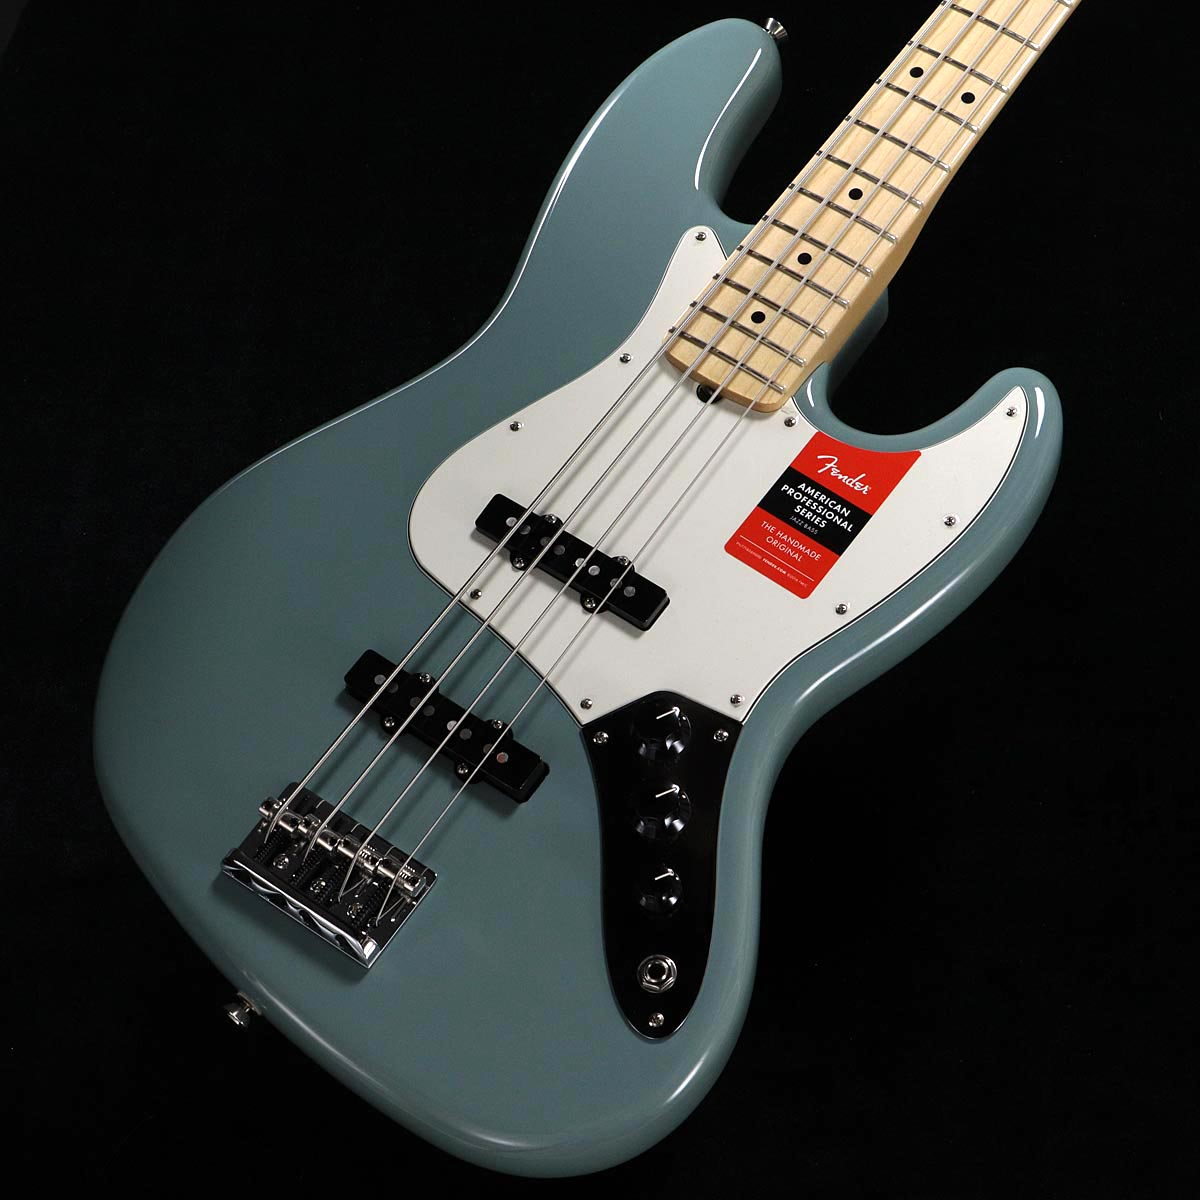 Fender USA/ American Pro Jazz American/ Bass Sonic Grey Fender Maple フェンダー【渋谷店】, レッグウェア専門店 パリシェ:f1341430 --- refractivemarketing.com